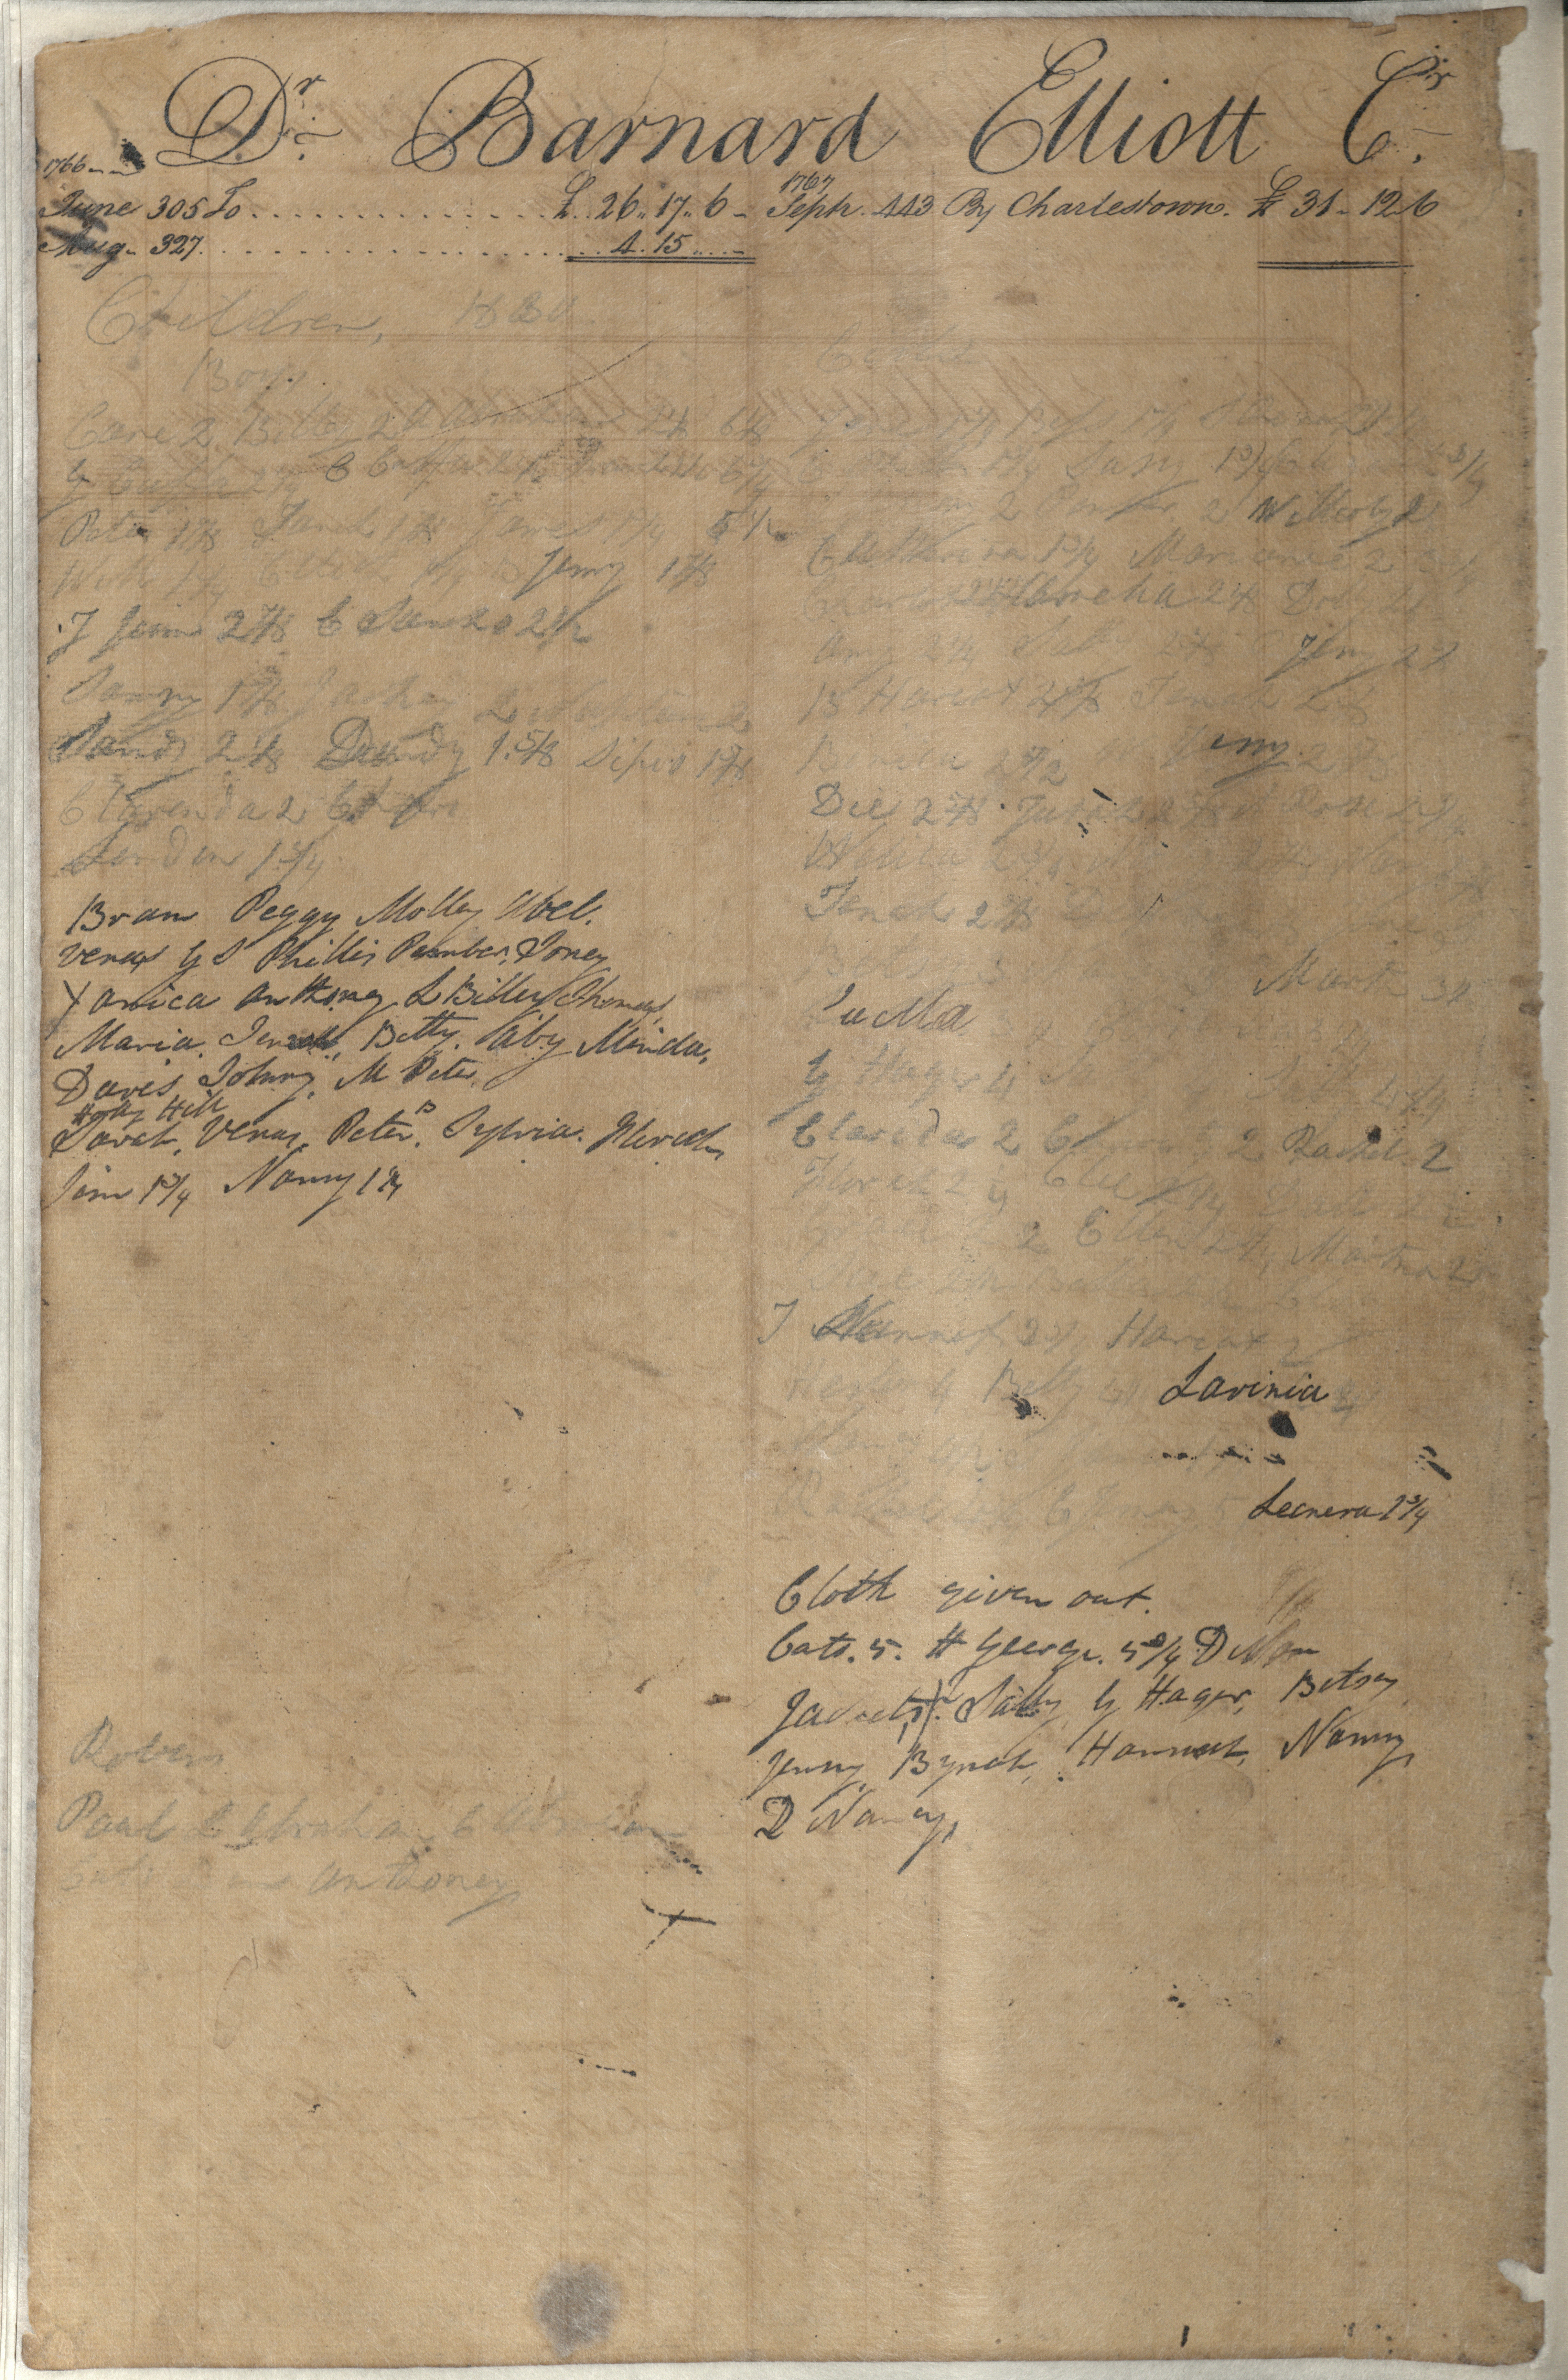 Plowden Weston's Business Ledger, page 253